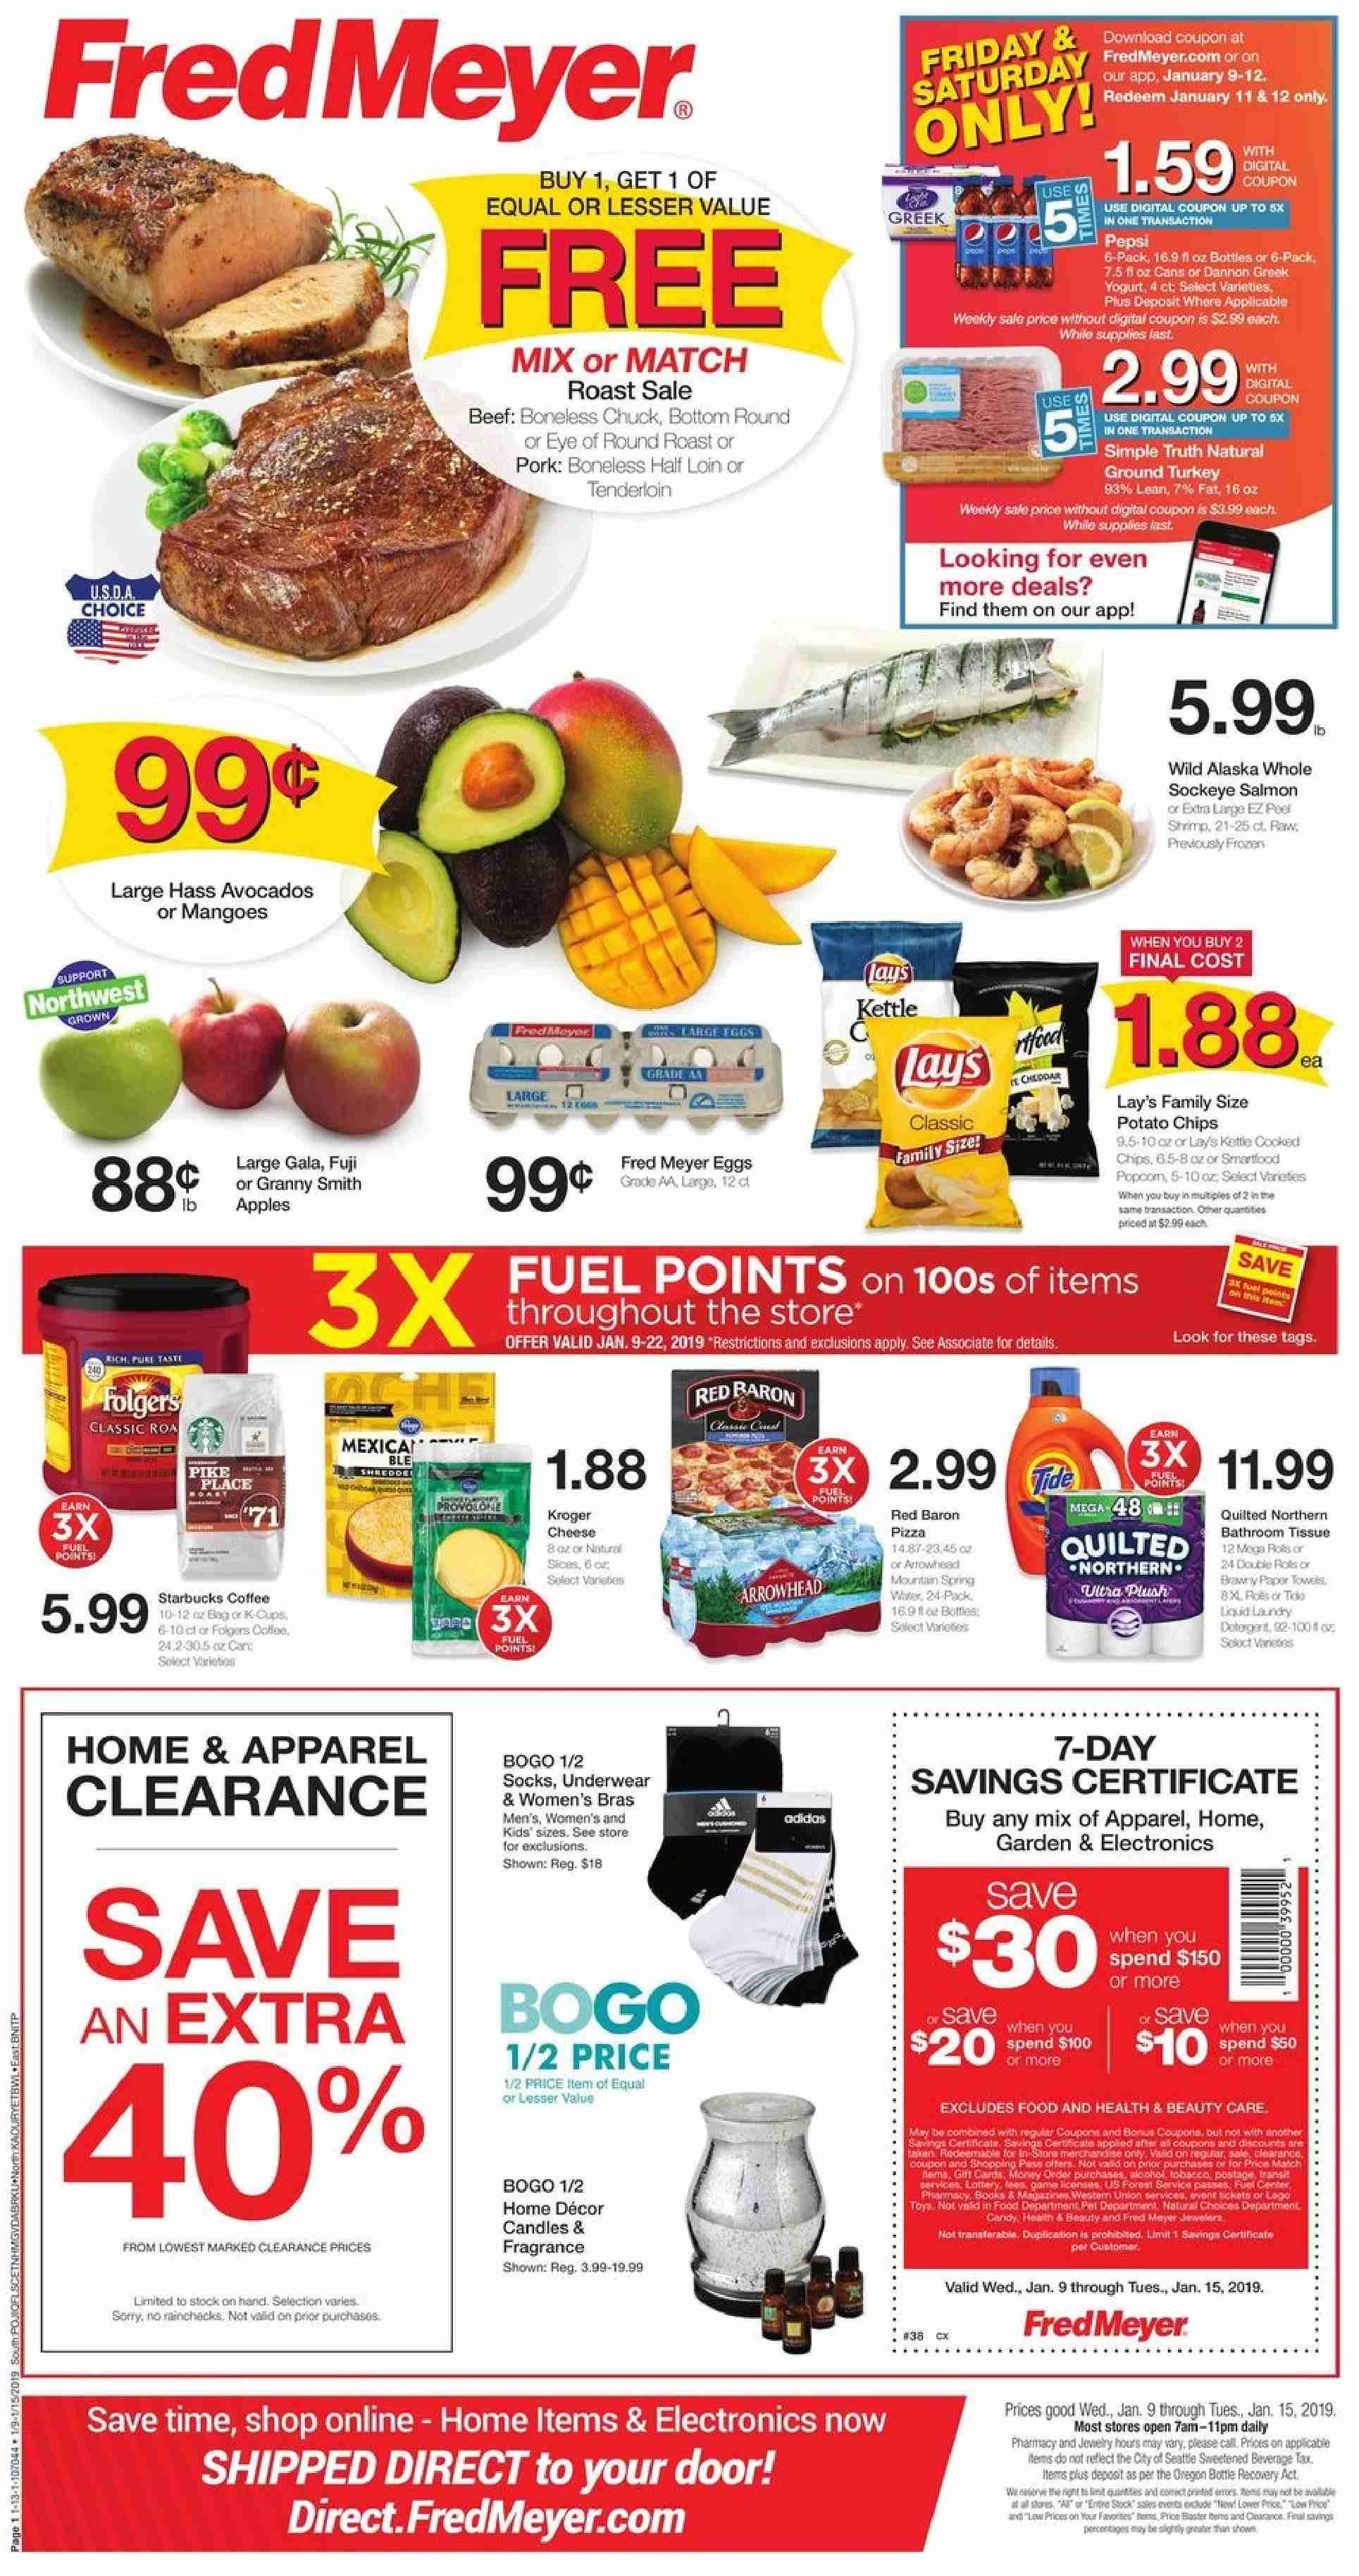 Fred Meyer Flyer - 01.09.2019 - 01.15.2019 - Sales products - apparel, avocado, beef meat, bottom, bra, candle, coffee, door, eggs, fuel, mango, shrimp, starbucks, pet, pizza, pork meat, potato chips, chips, toys, candy, game, jewelry. Page 1.